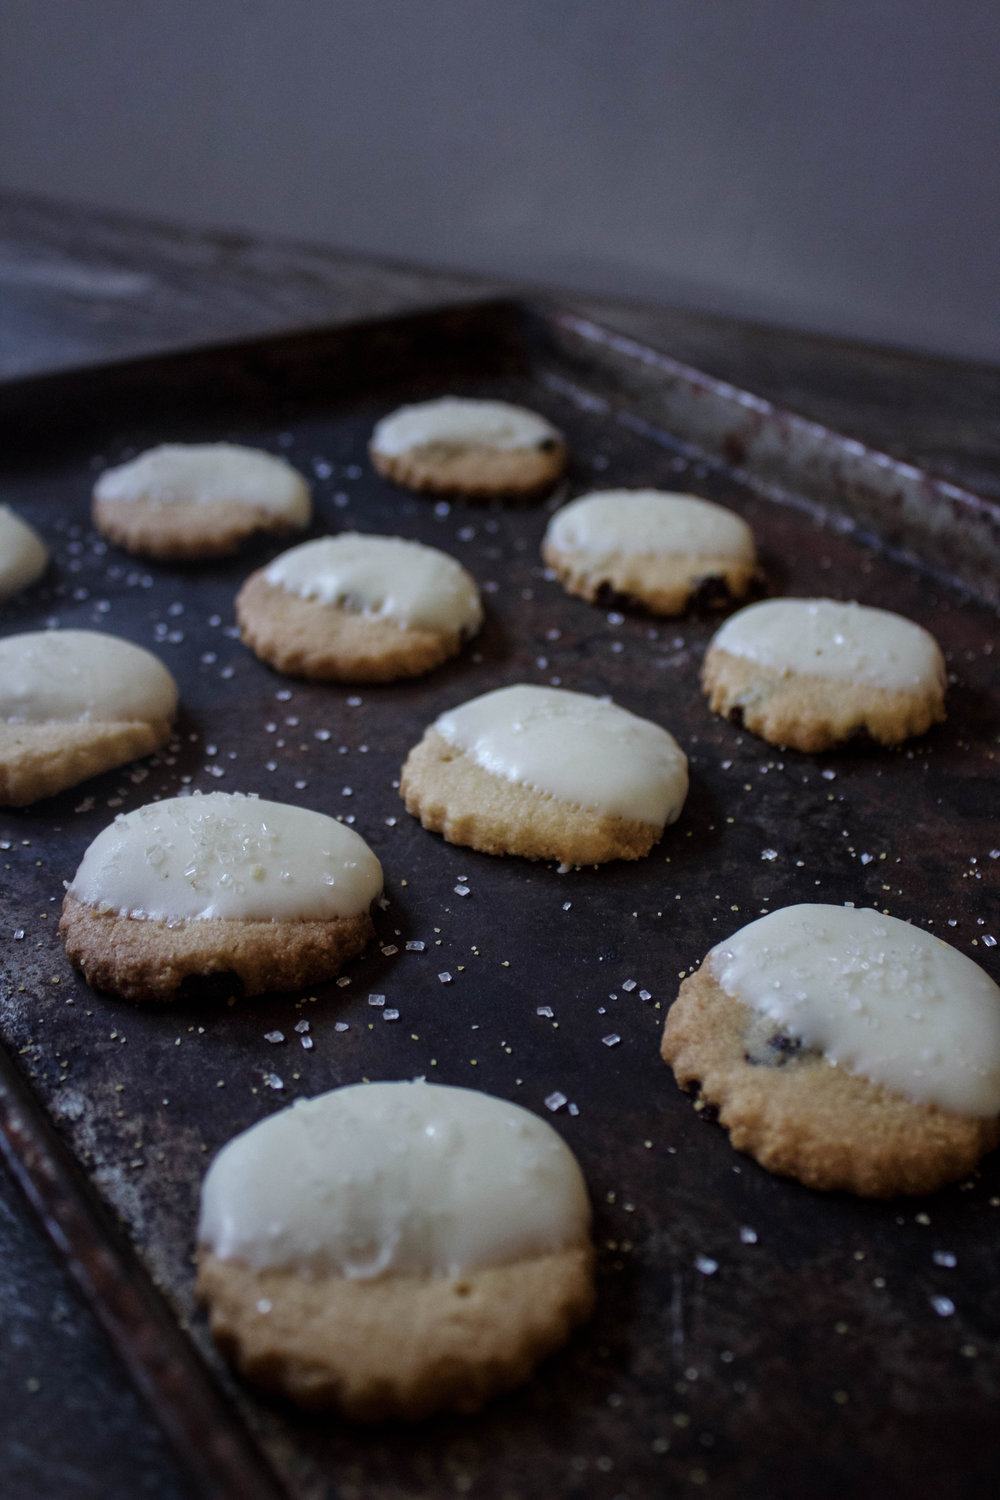 Cornmeal and Cherry Shortbread Cookies